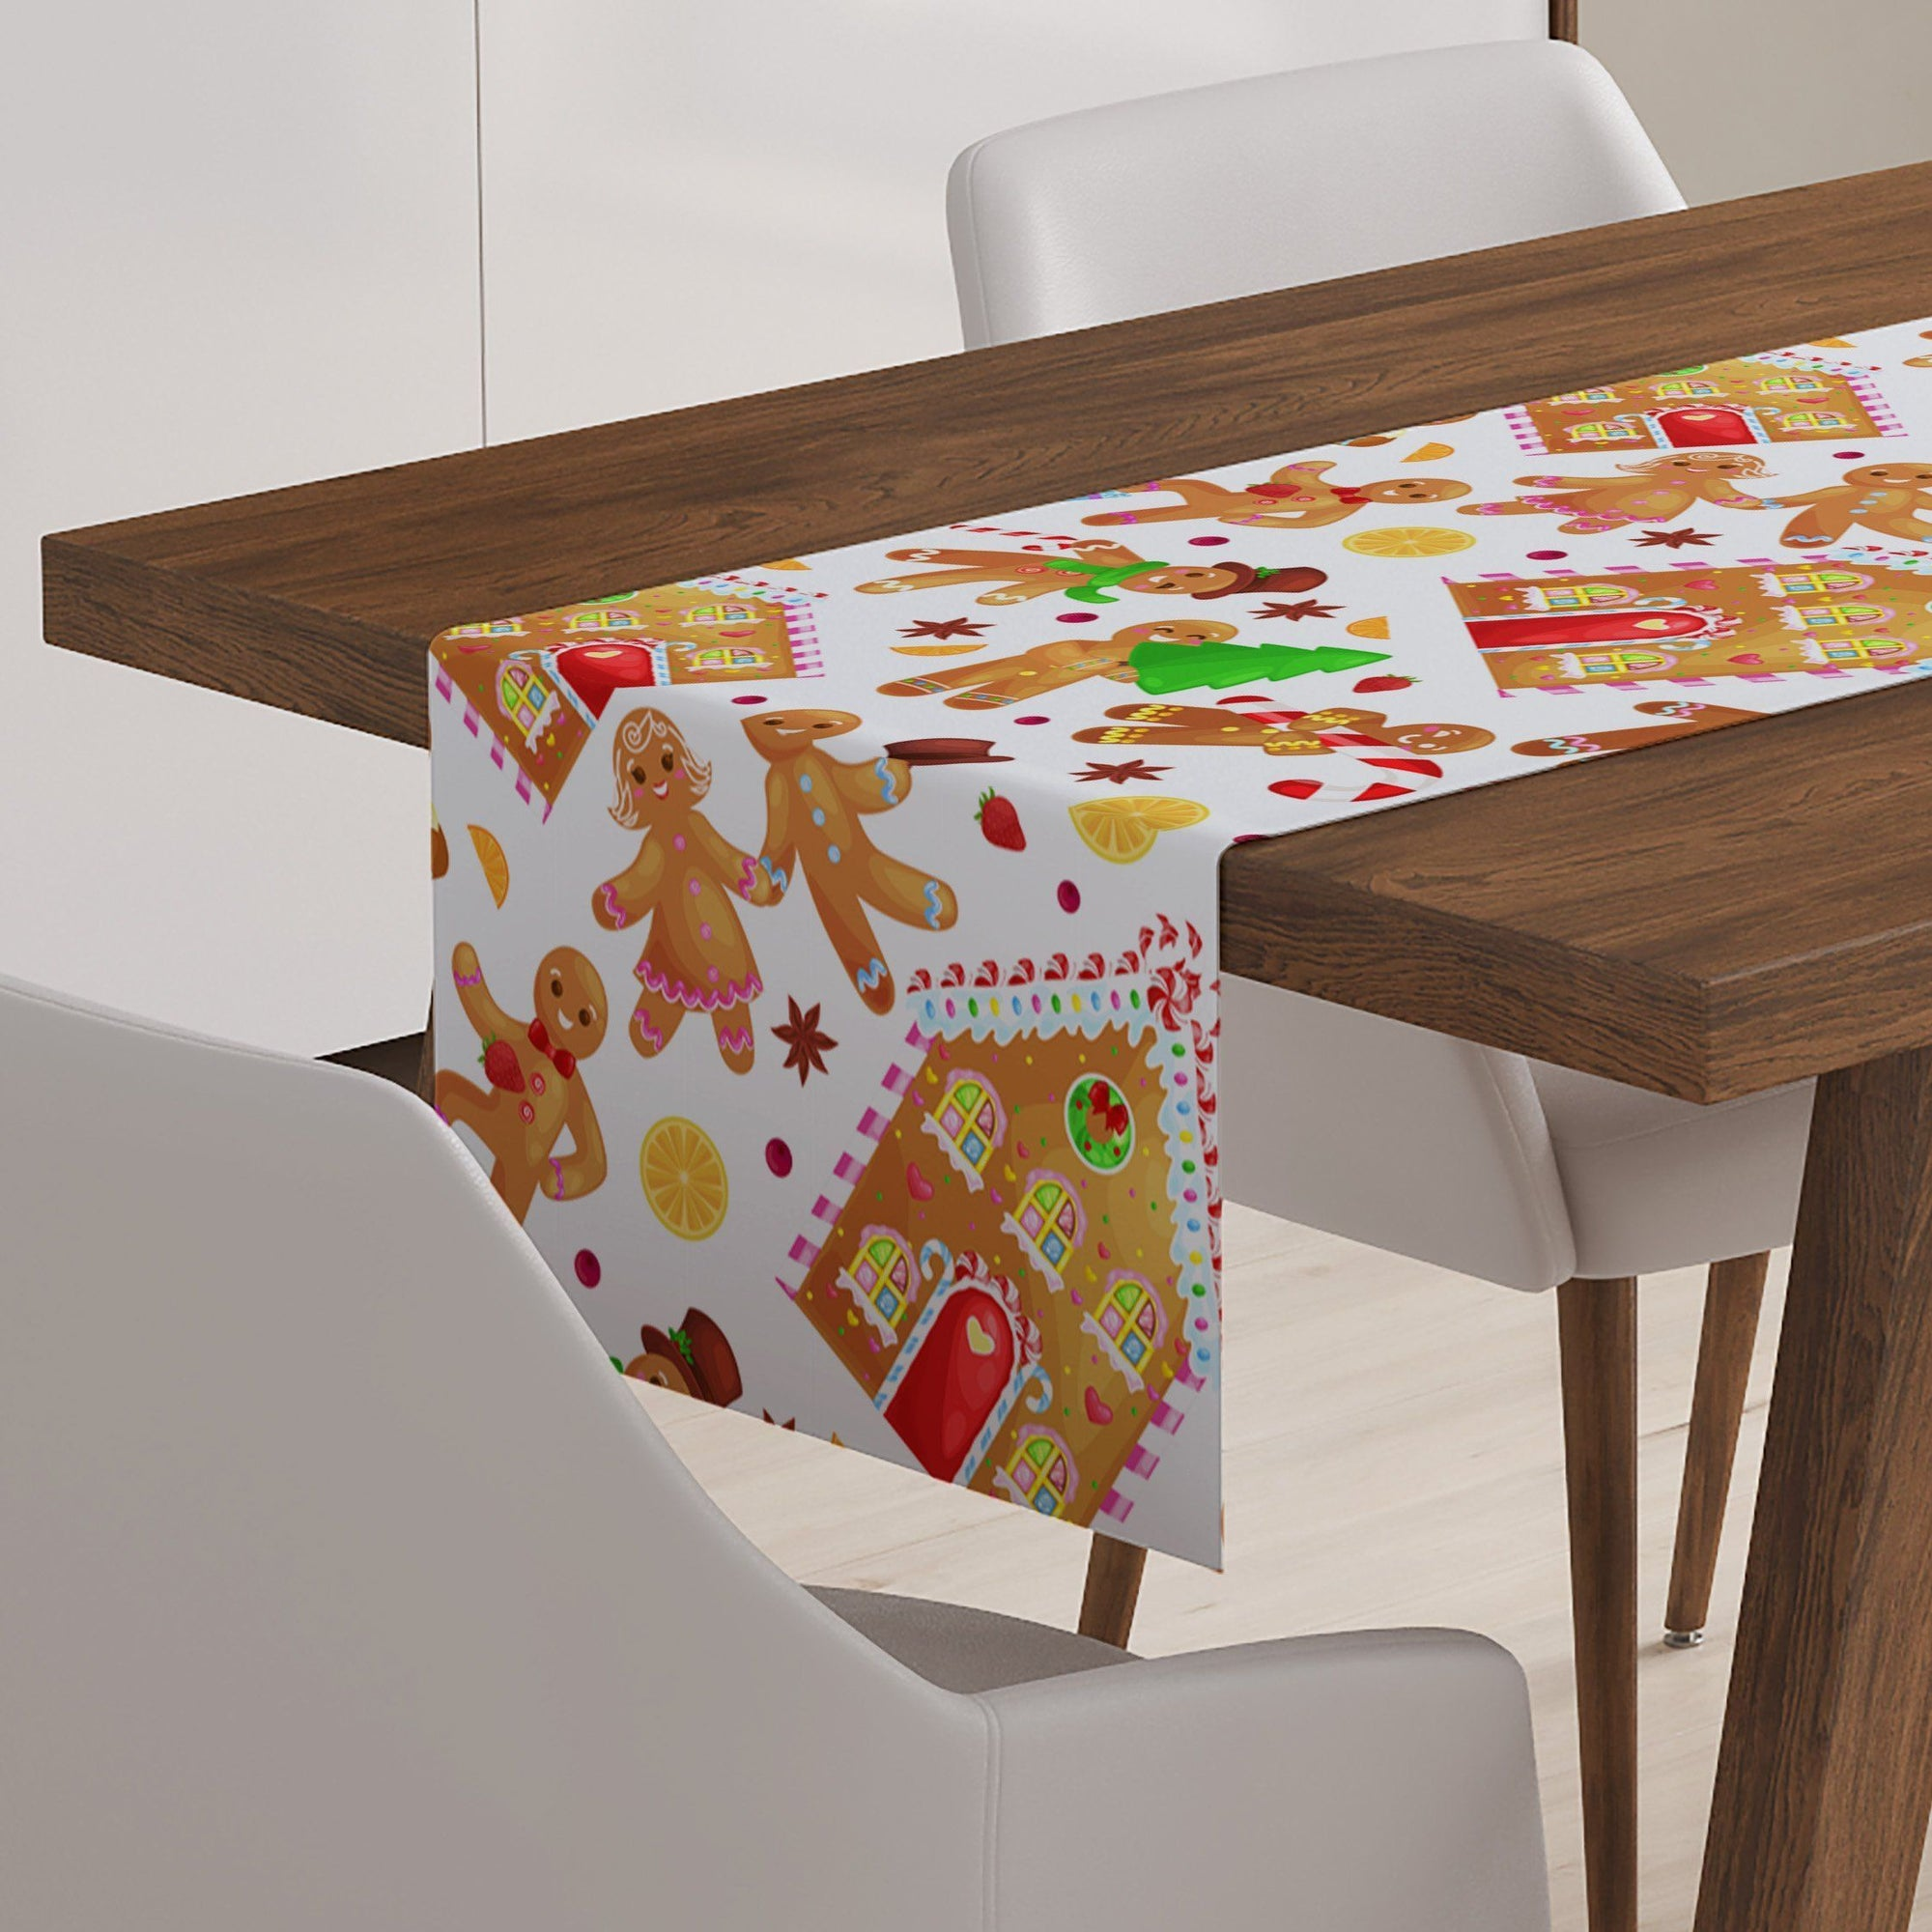 Gingerbread Man Table Runner - Table Runners - W.FRANCIS